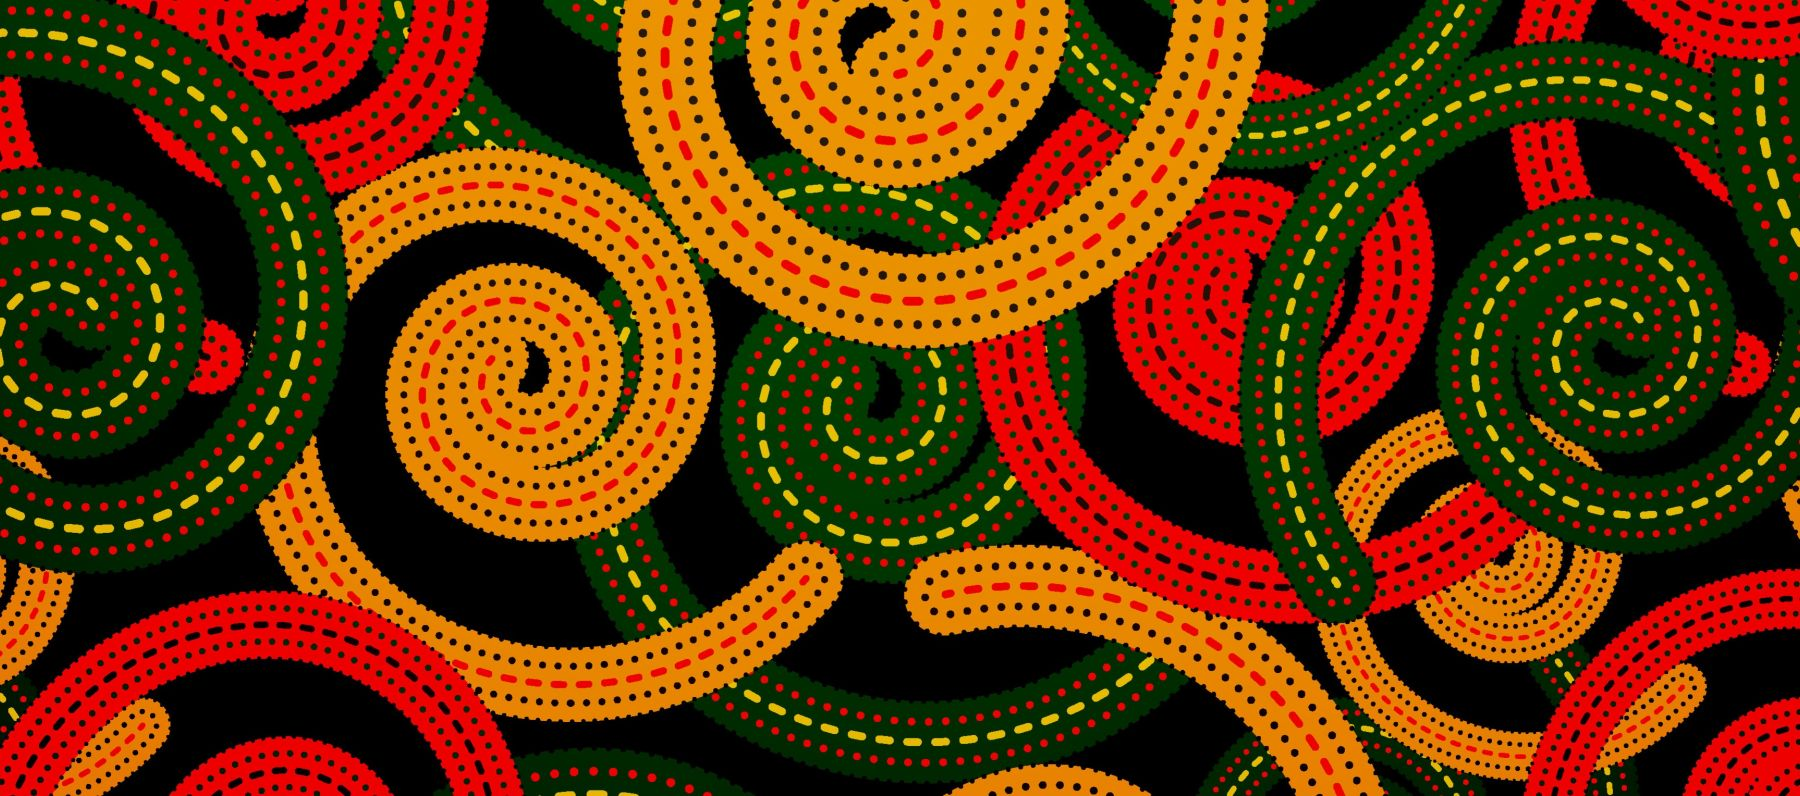 Abstract senegalese pattern